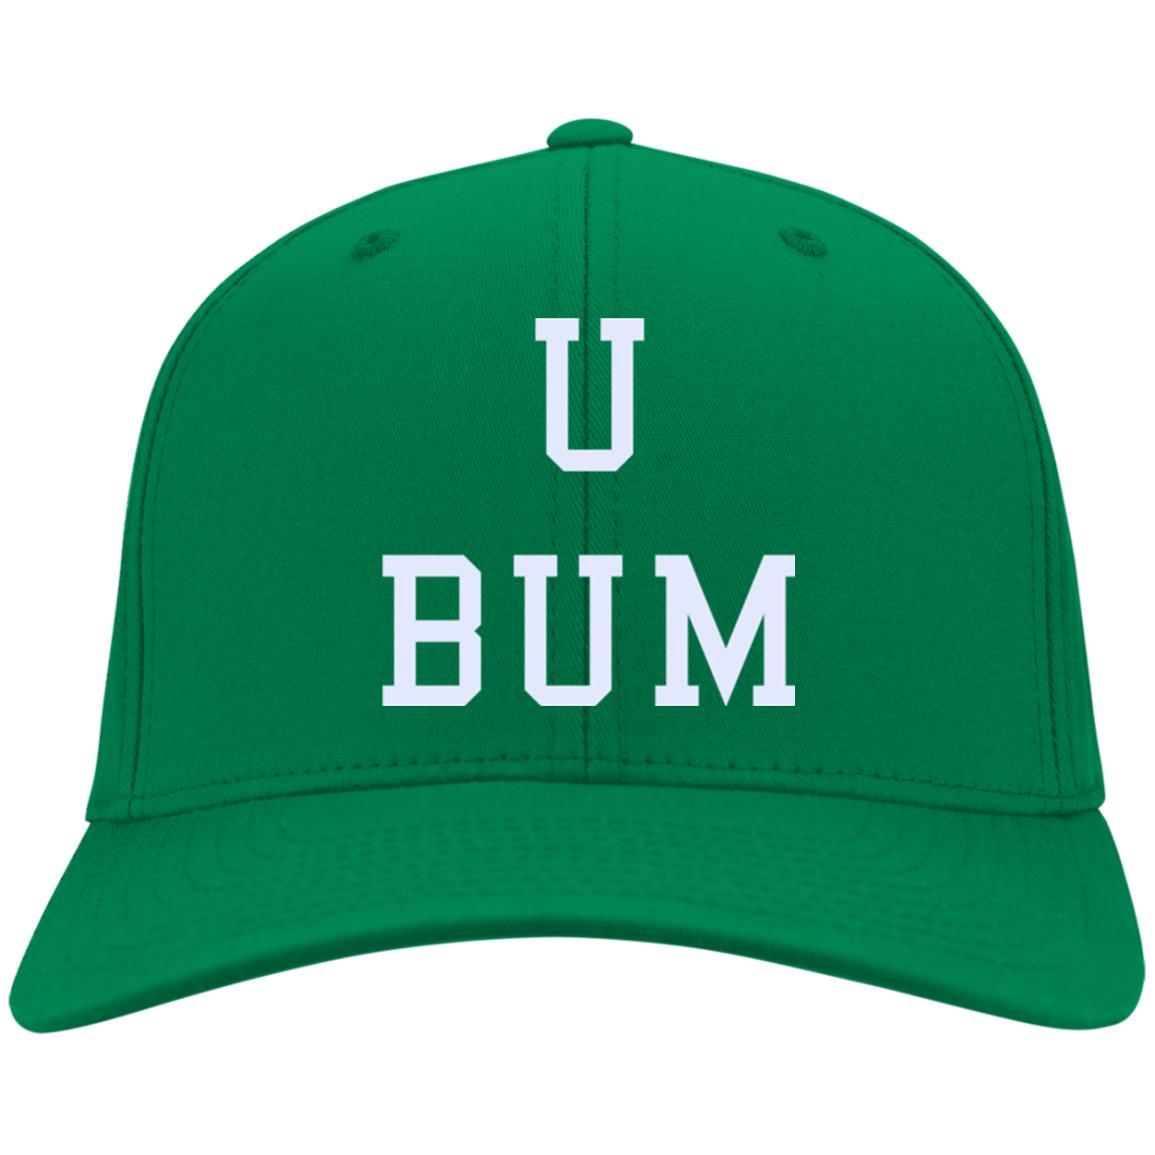 image 1811 - LeBron James U Bum embroidery hat & snapback